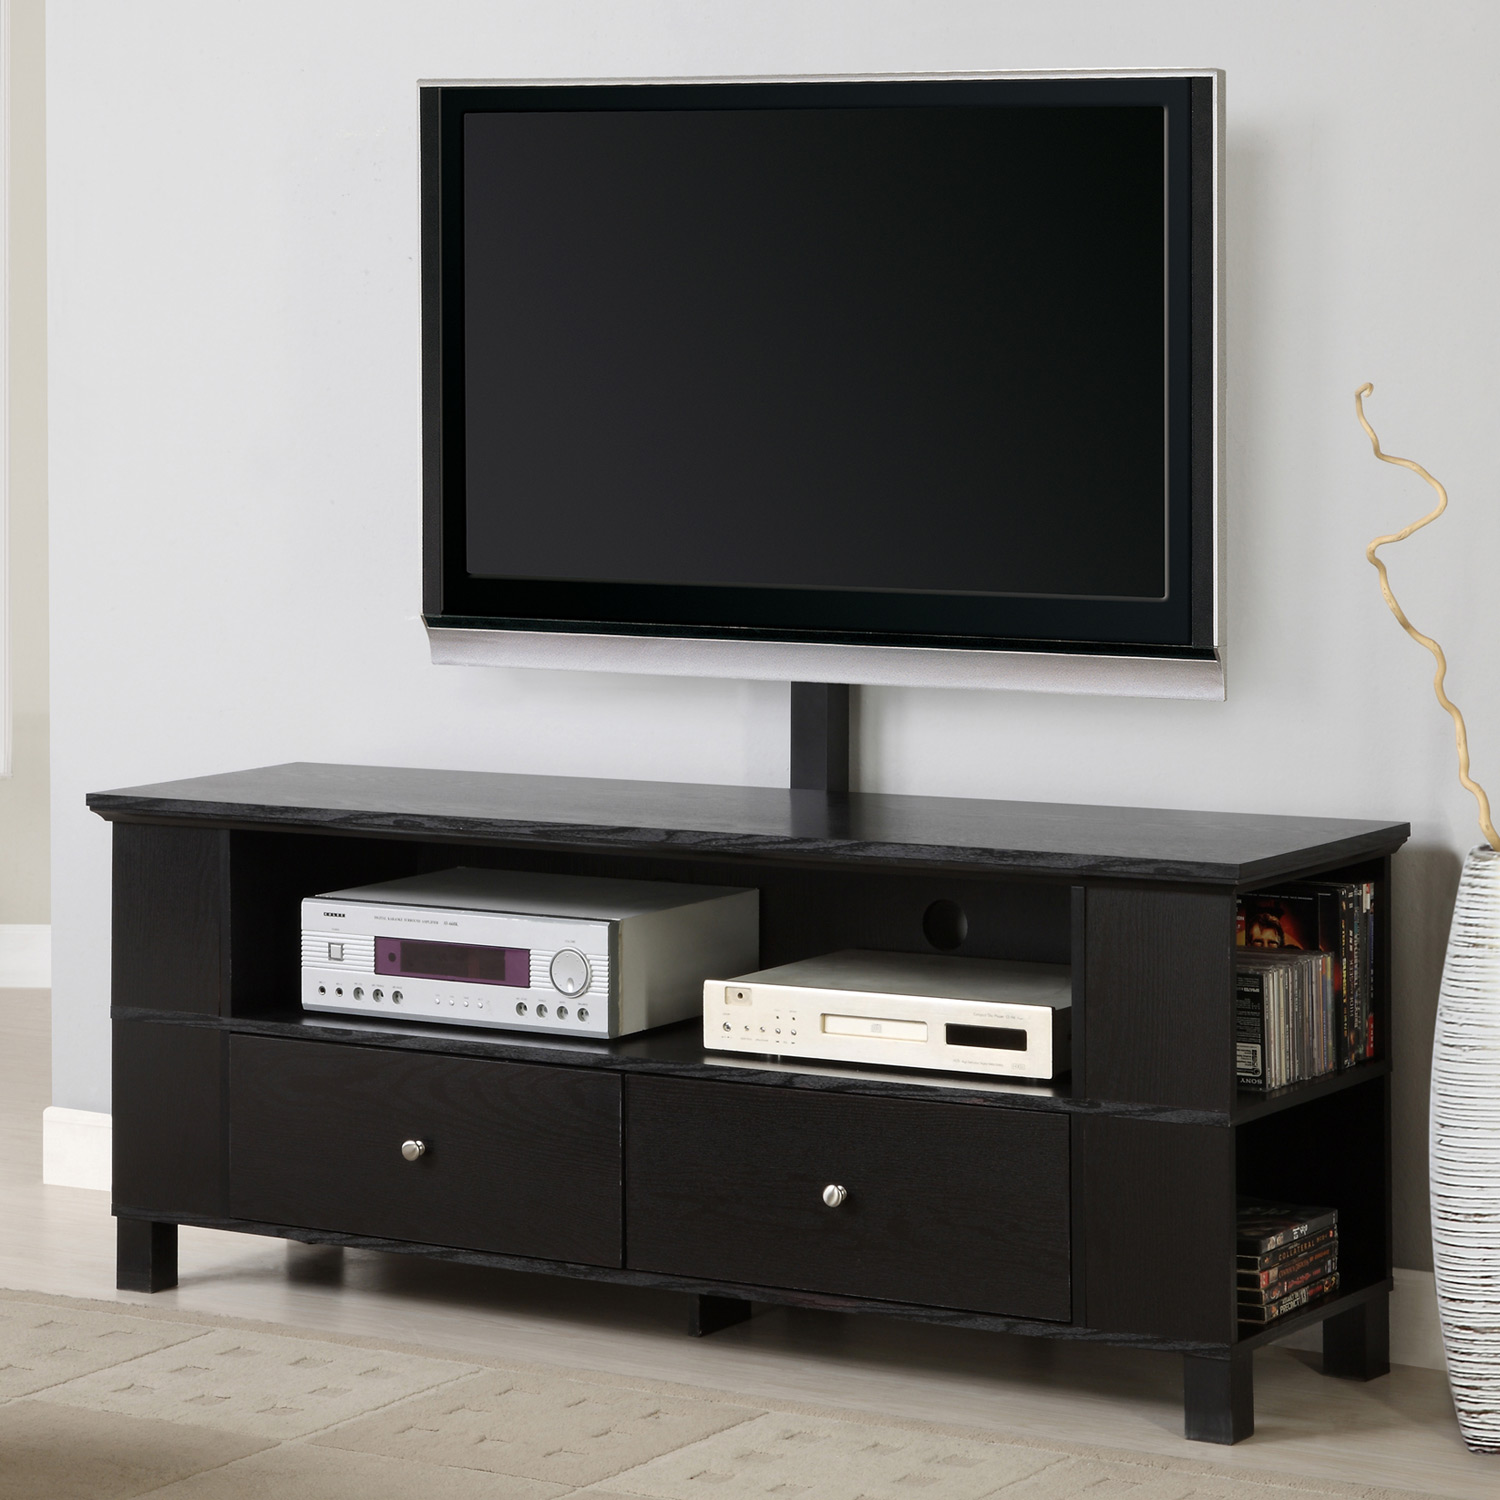 60 39 39 wood tv console with mount and multi purpose storage for Tv console with storage